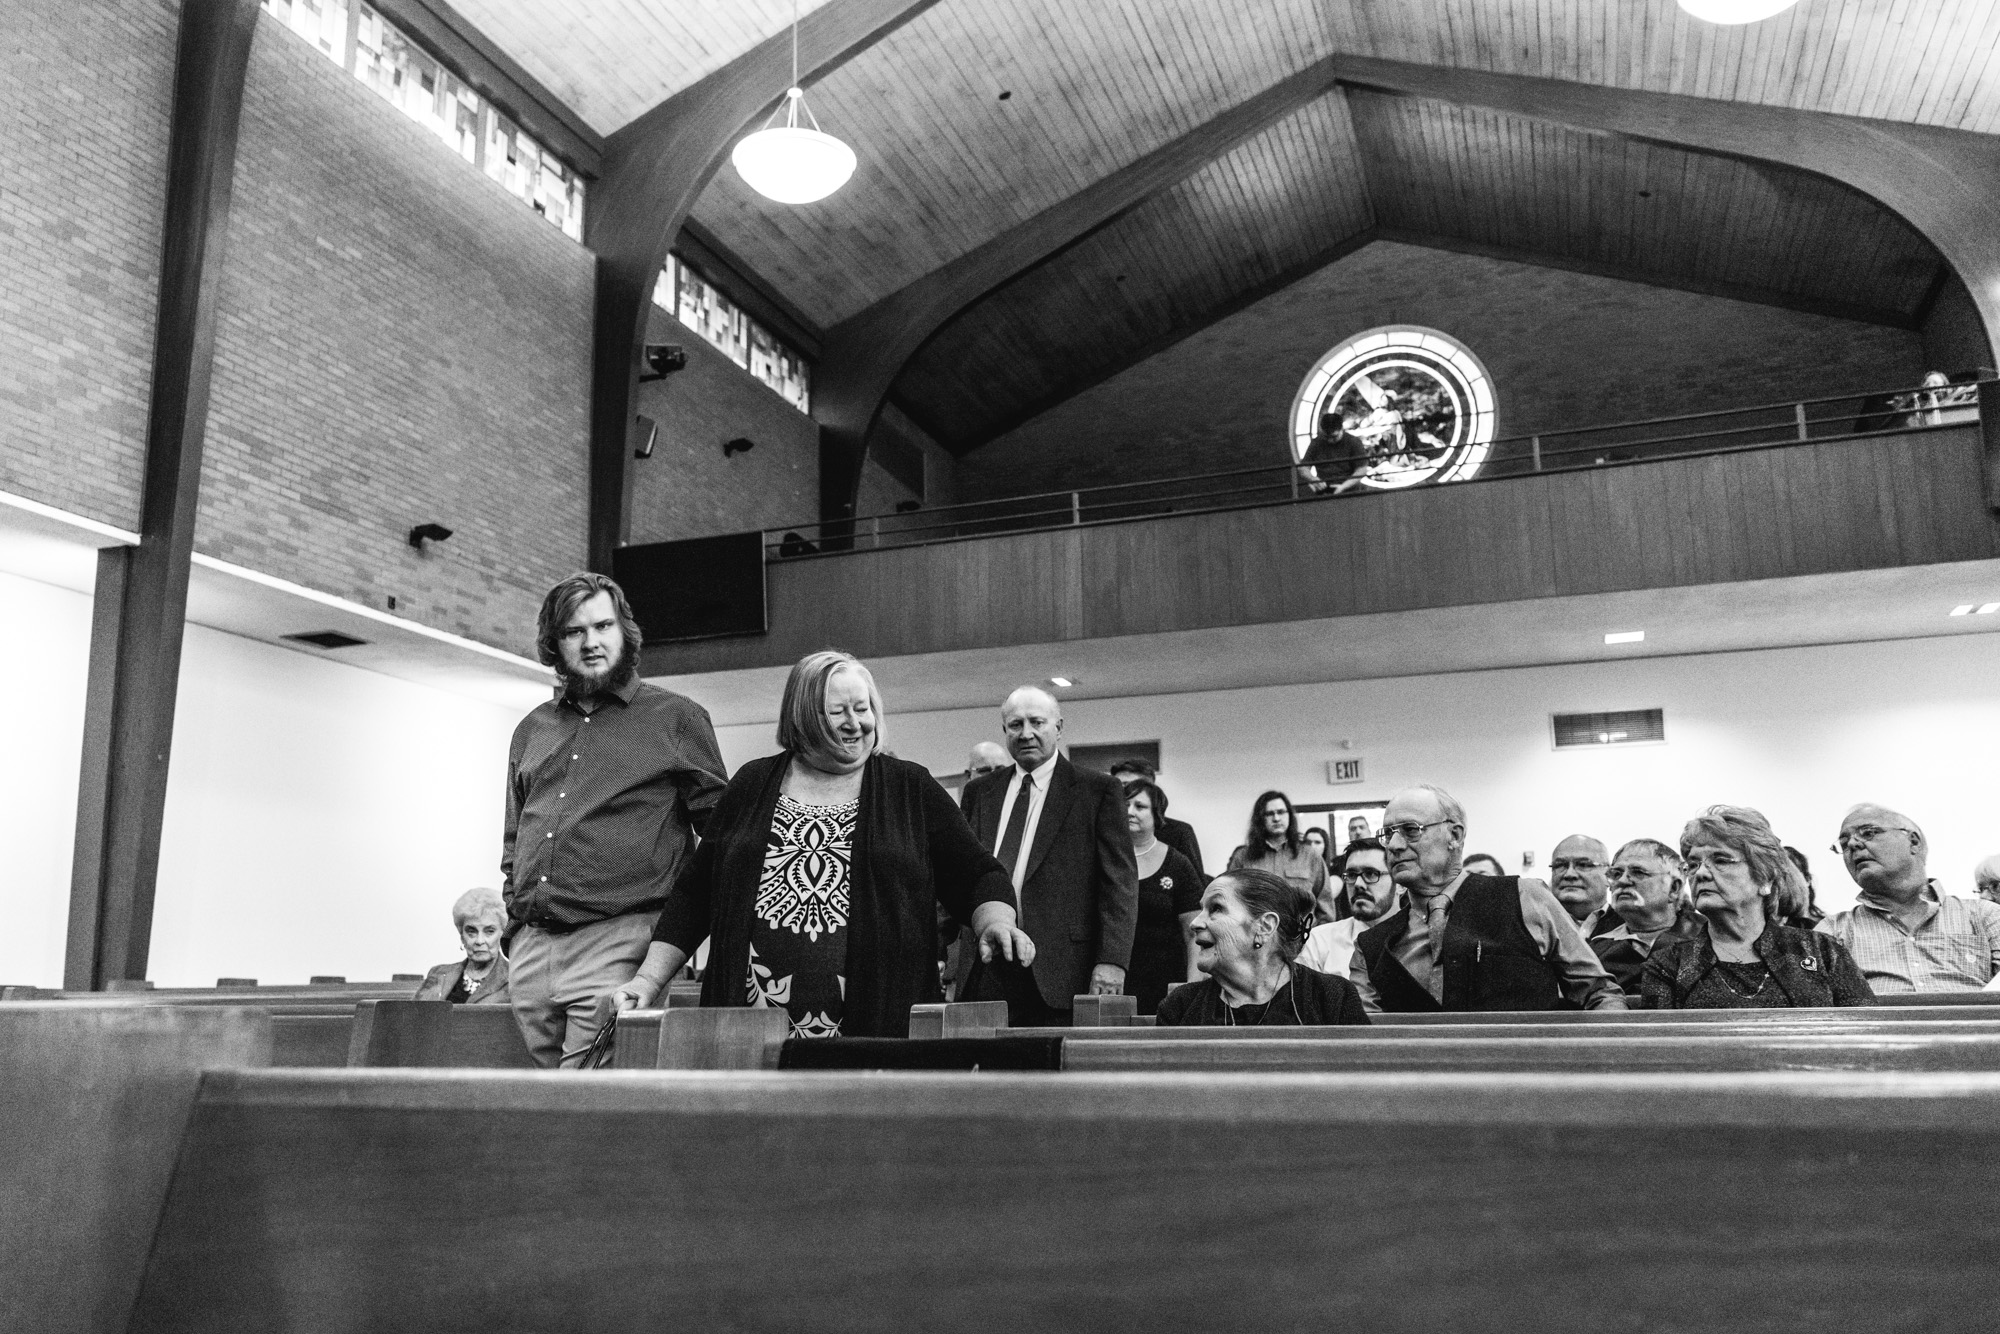 The immediate family of Barbara Richard enters the church to begin Barbara's funeral service at the Greeley United Methodist Church in Greeley, CO